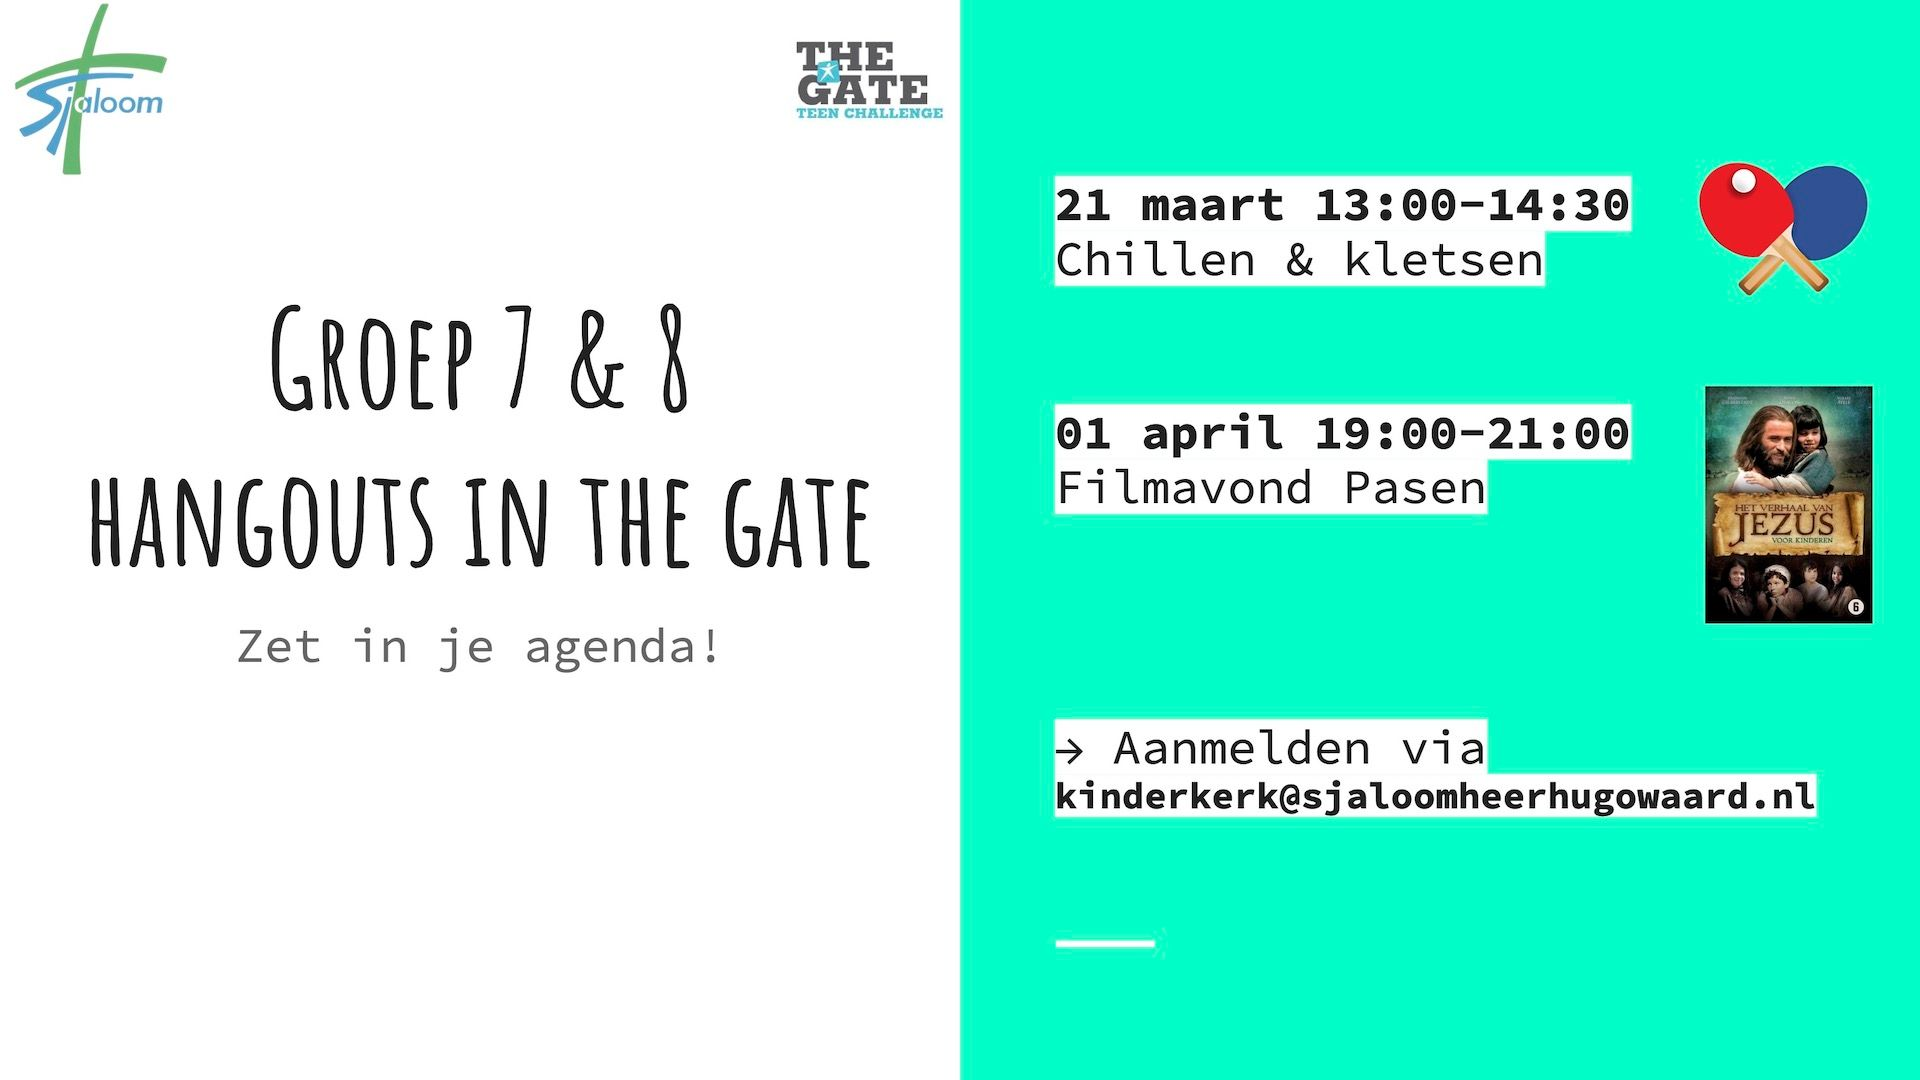 Groep 7 & 8 hangouts in The Gate